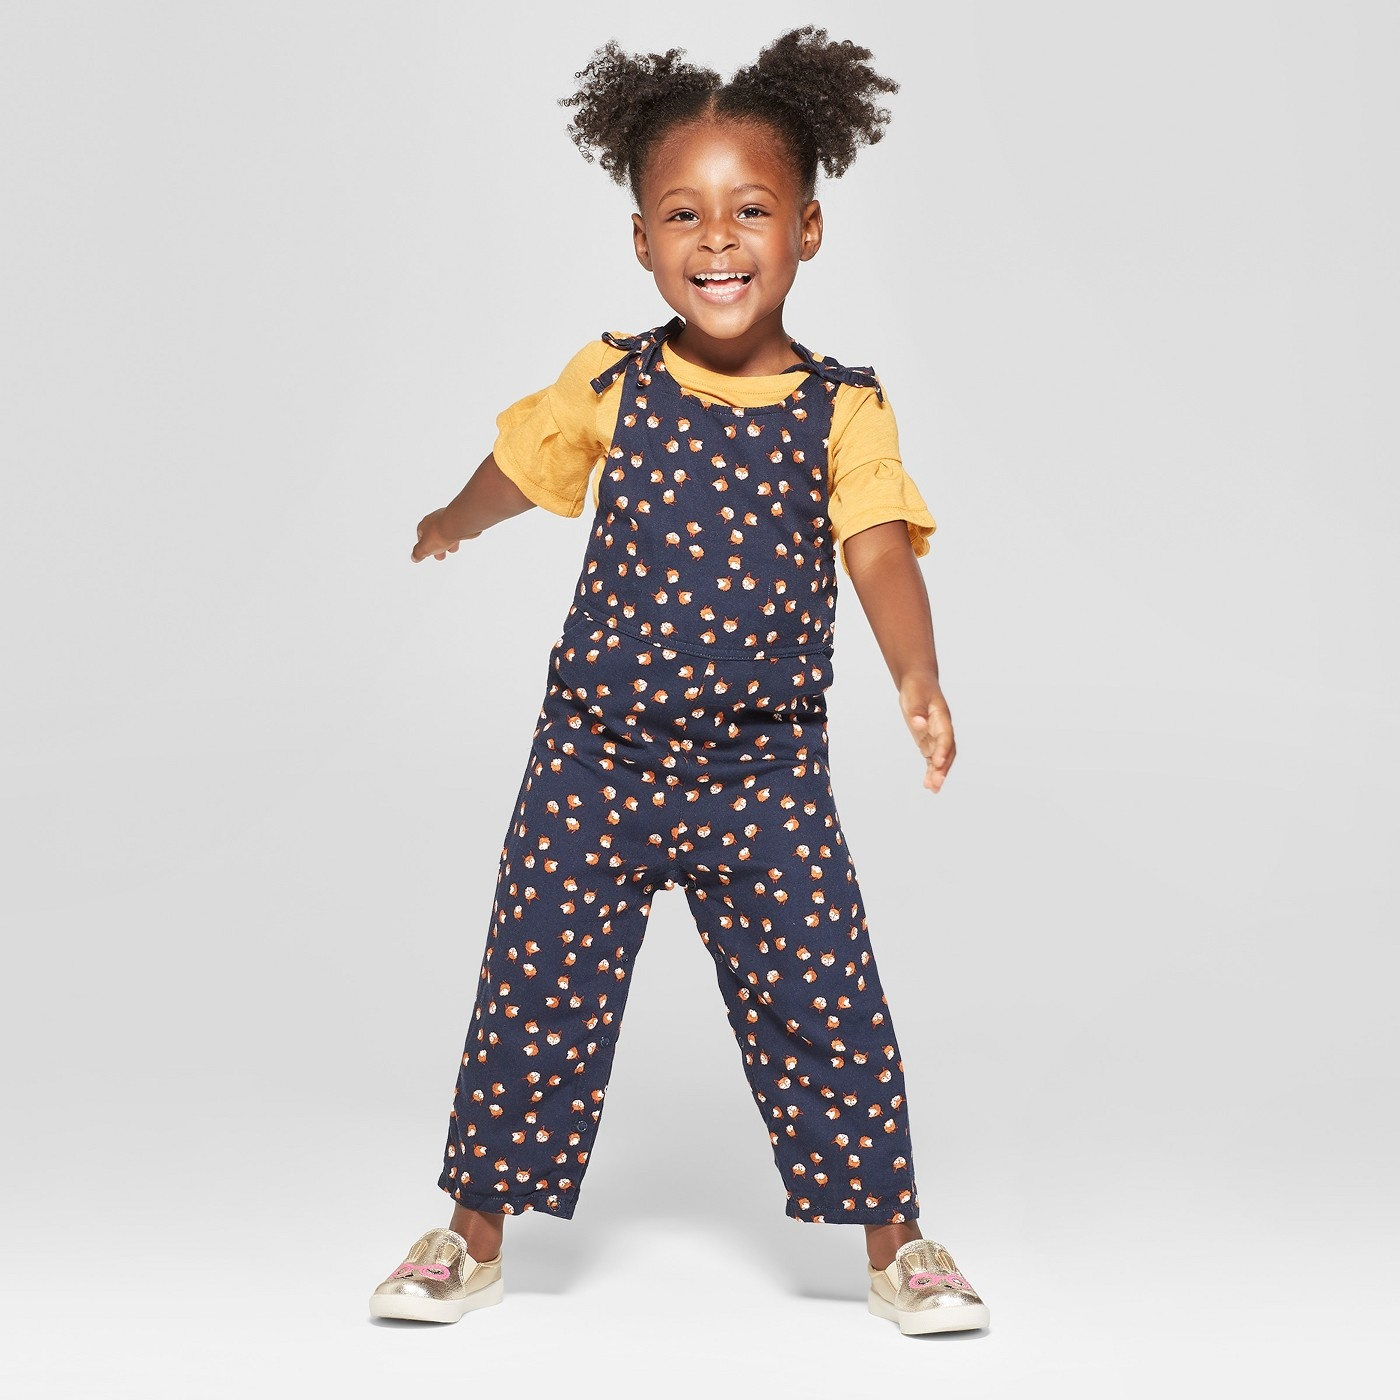 e3358a52063 15 back-to-school clothing ideas for toddlers to big kids - Motherly